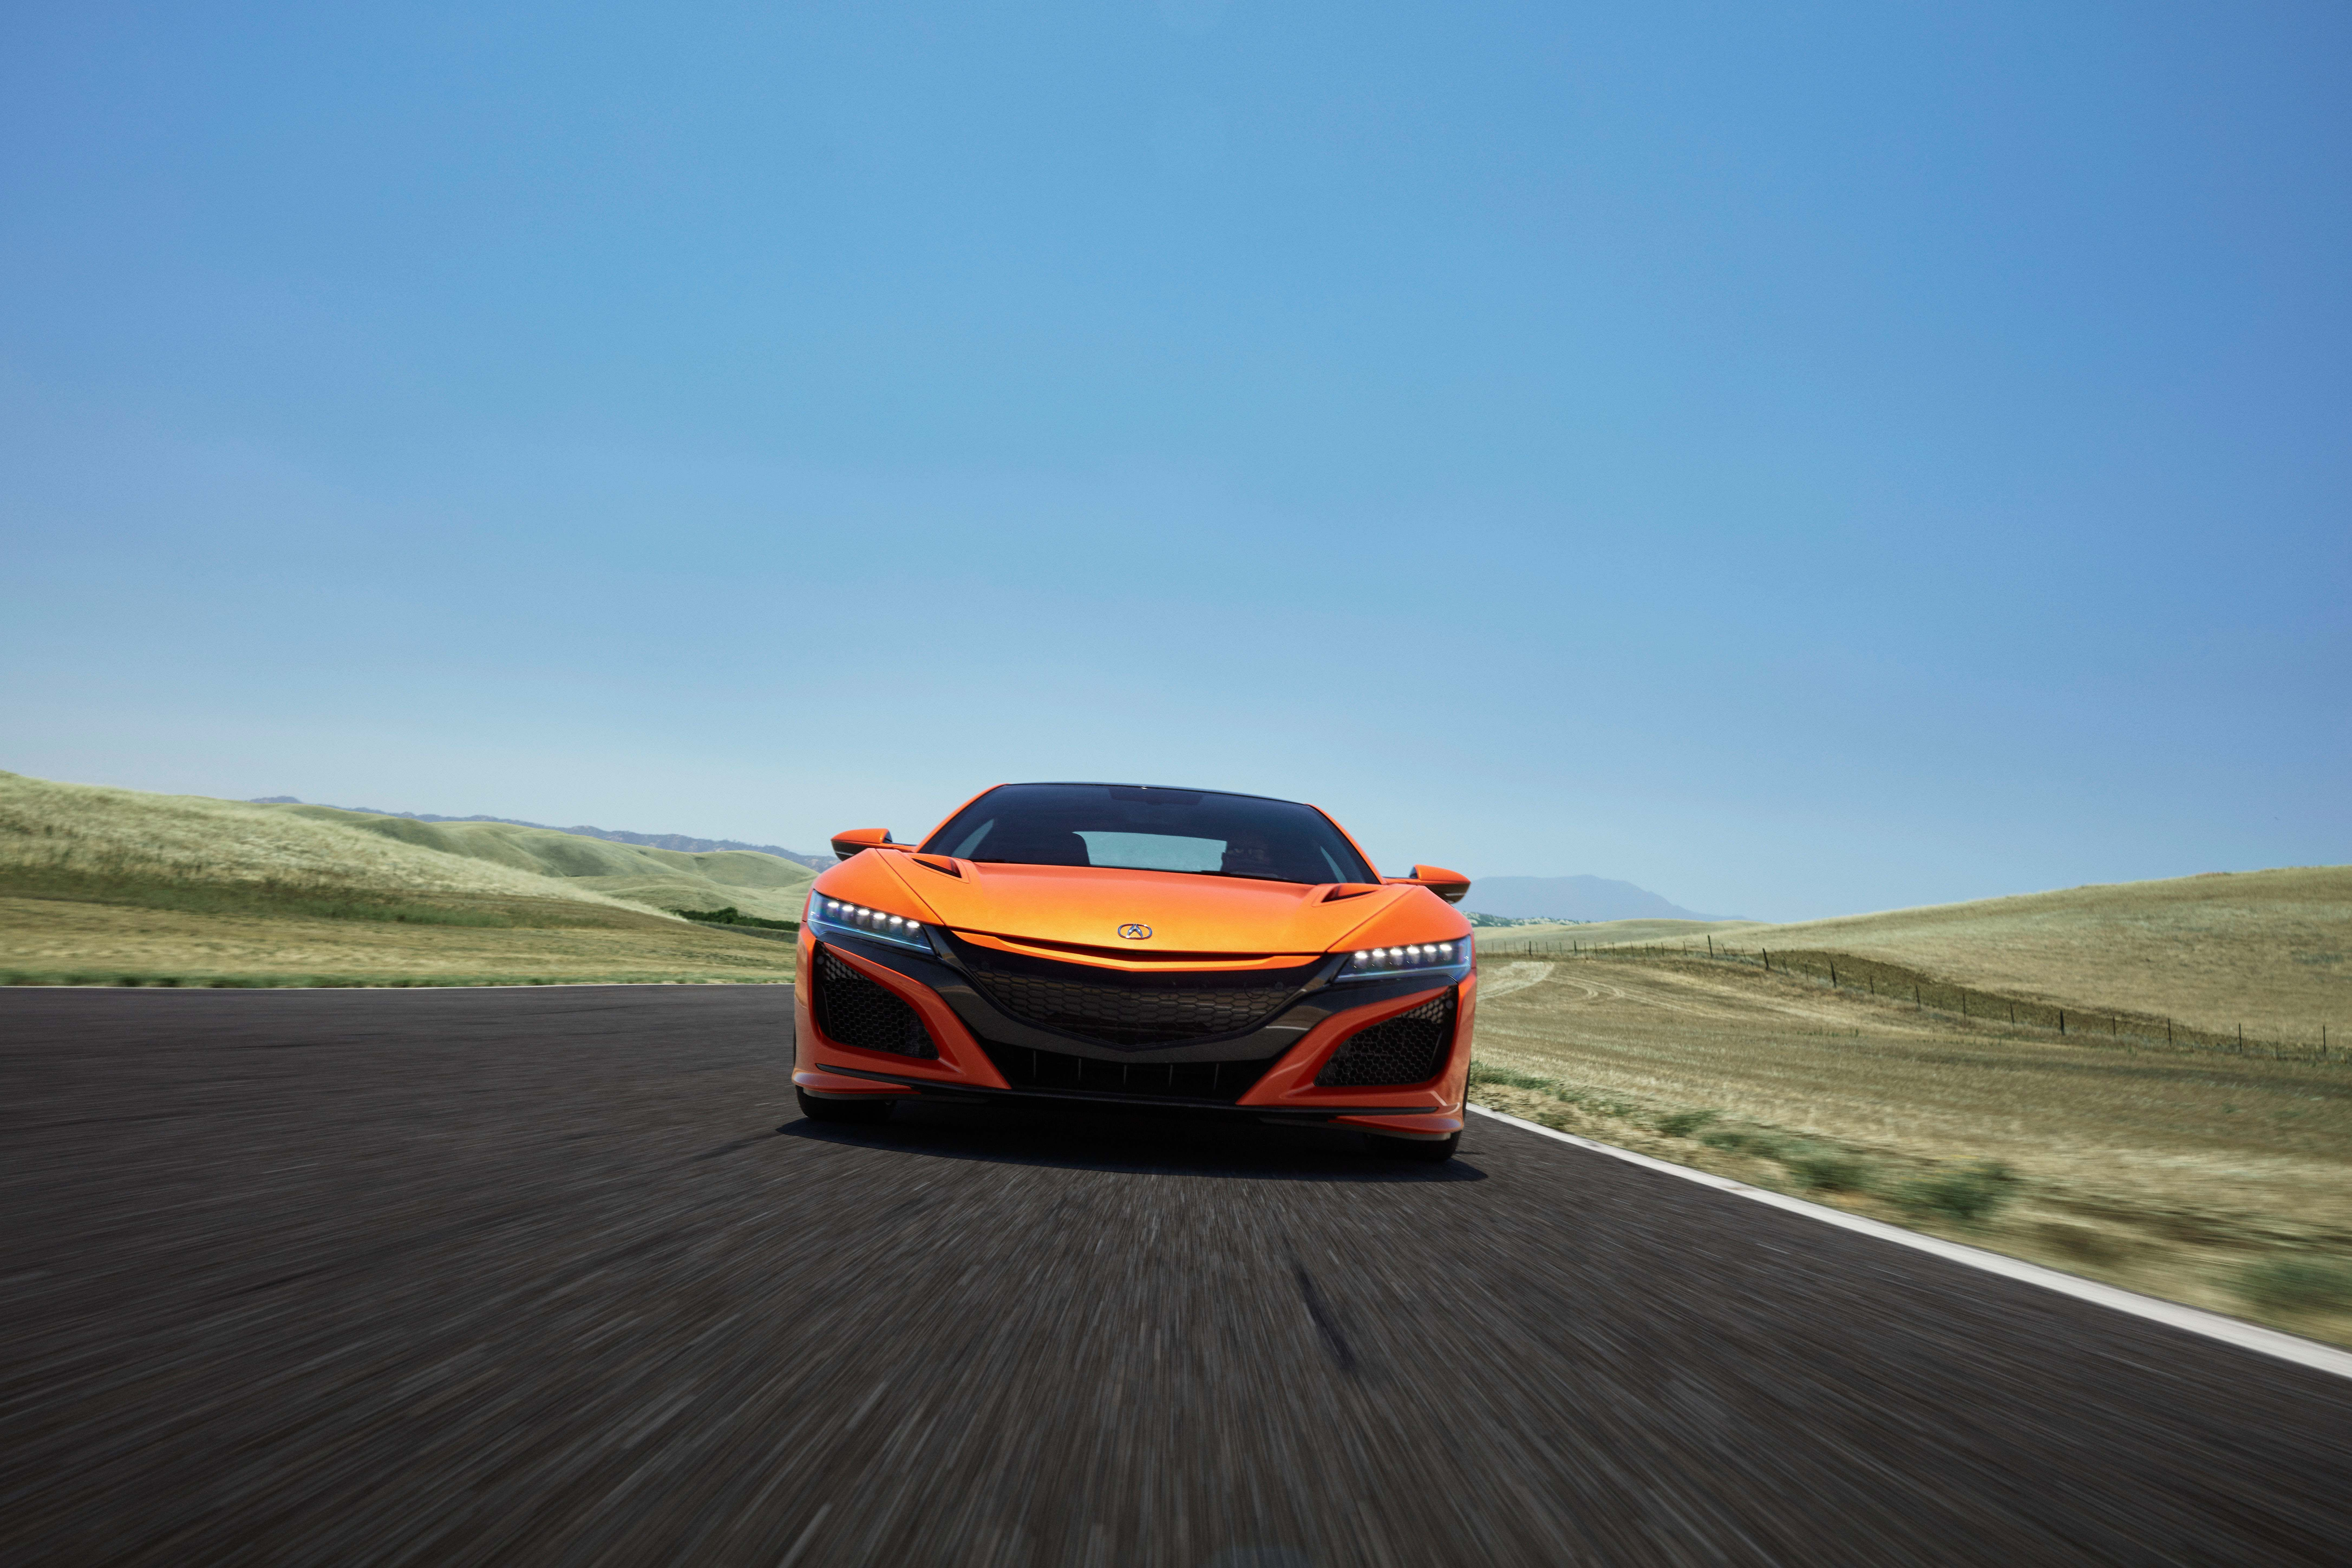 2019 Acura Nsx Specs Updated Nsx Supercar Price Horsepower And